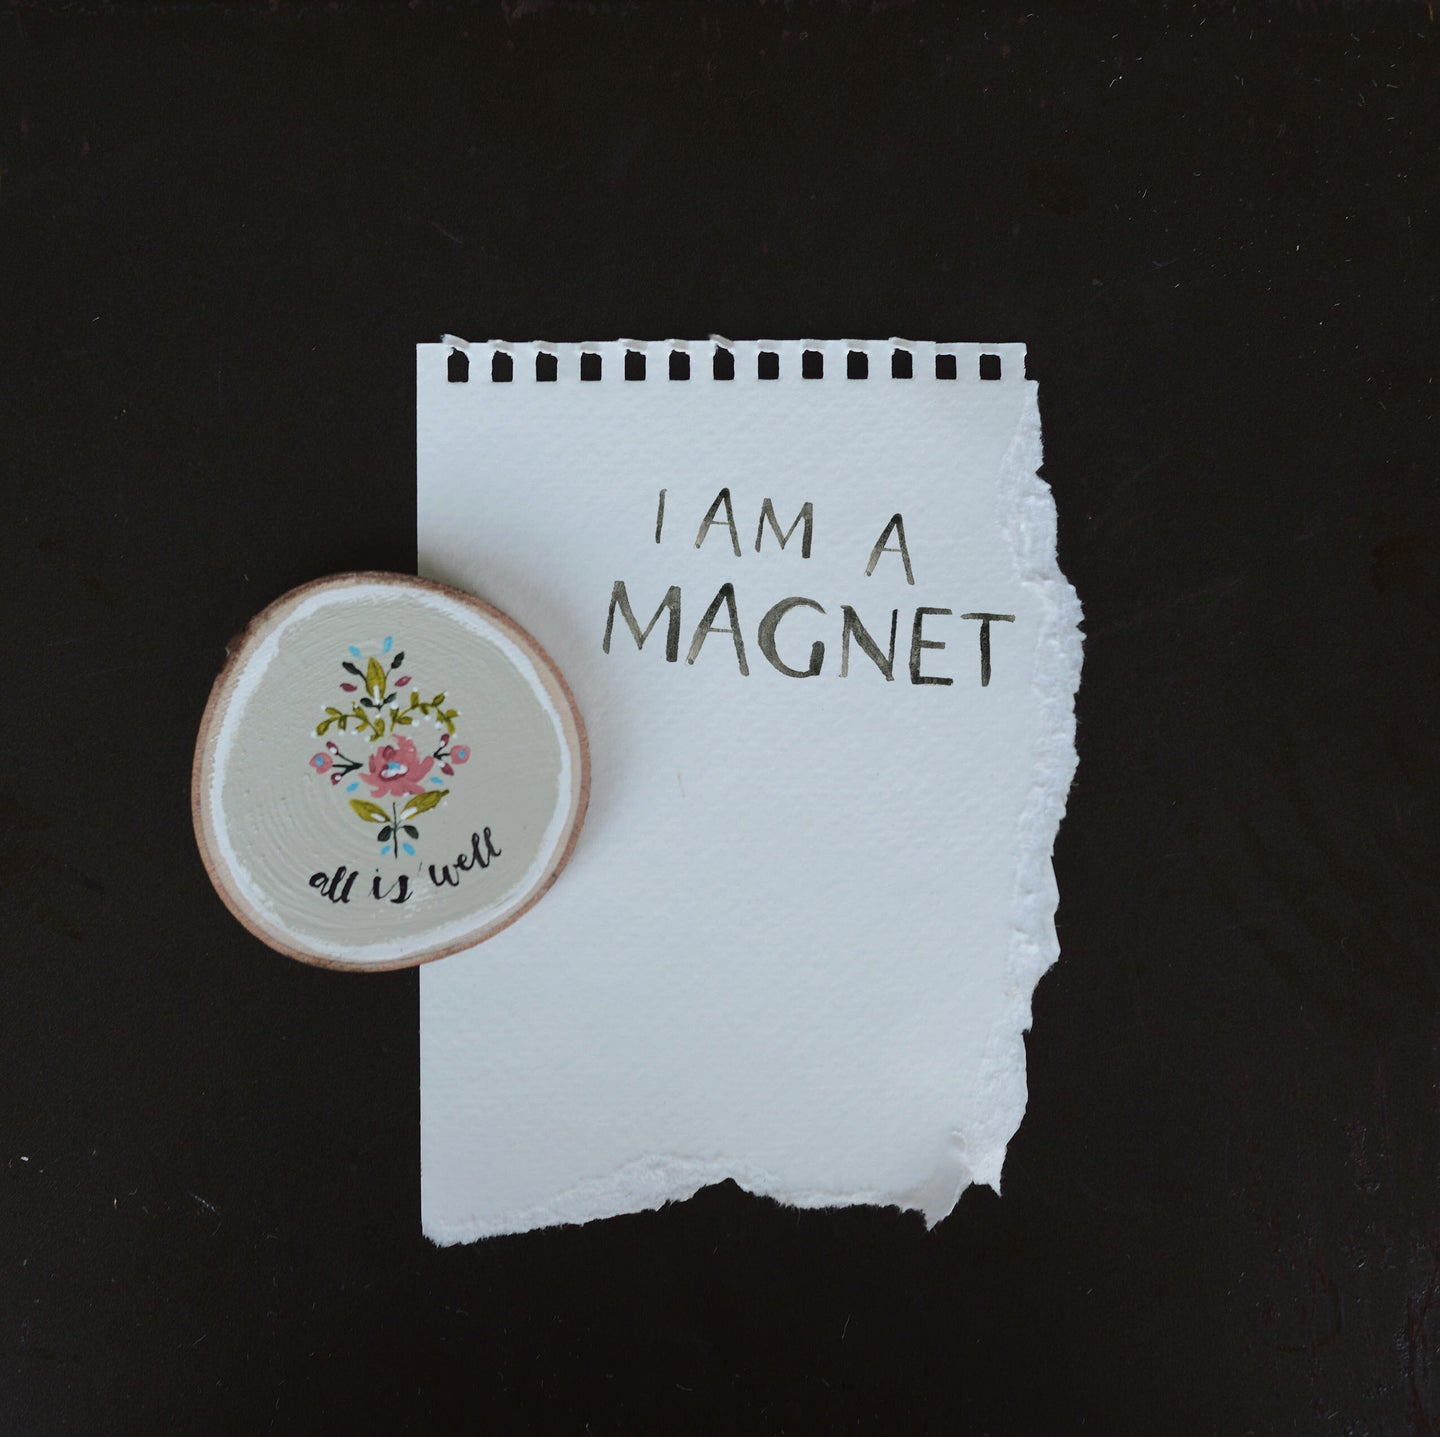 Magnet | All is well